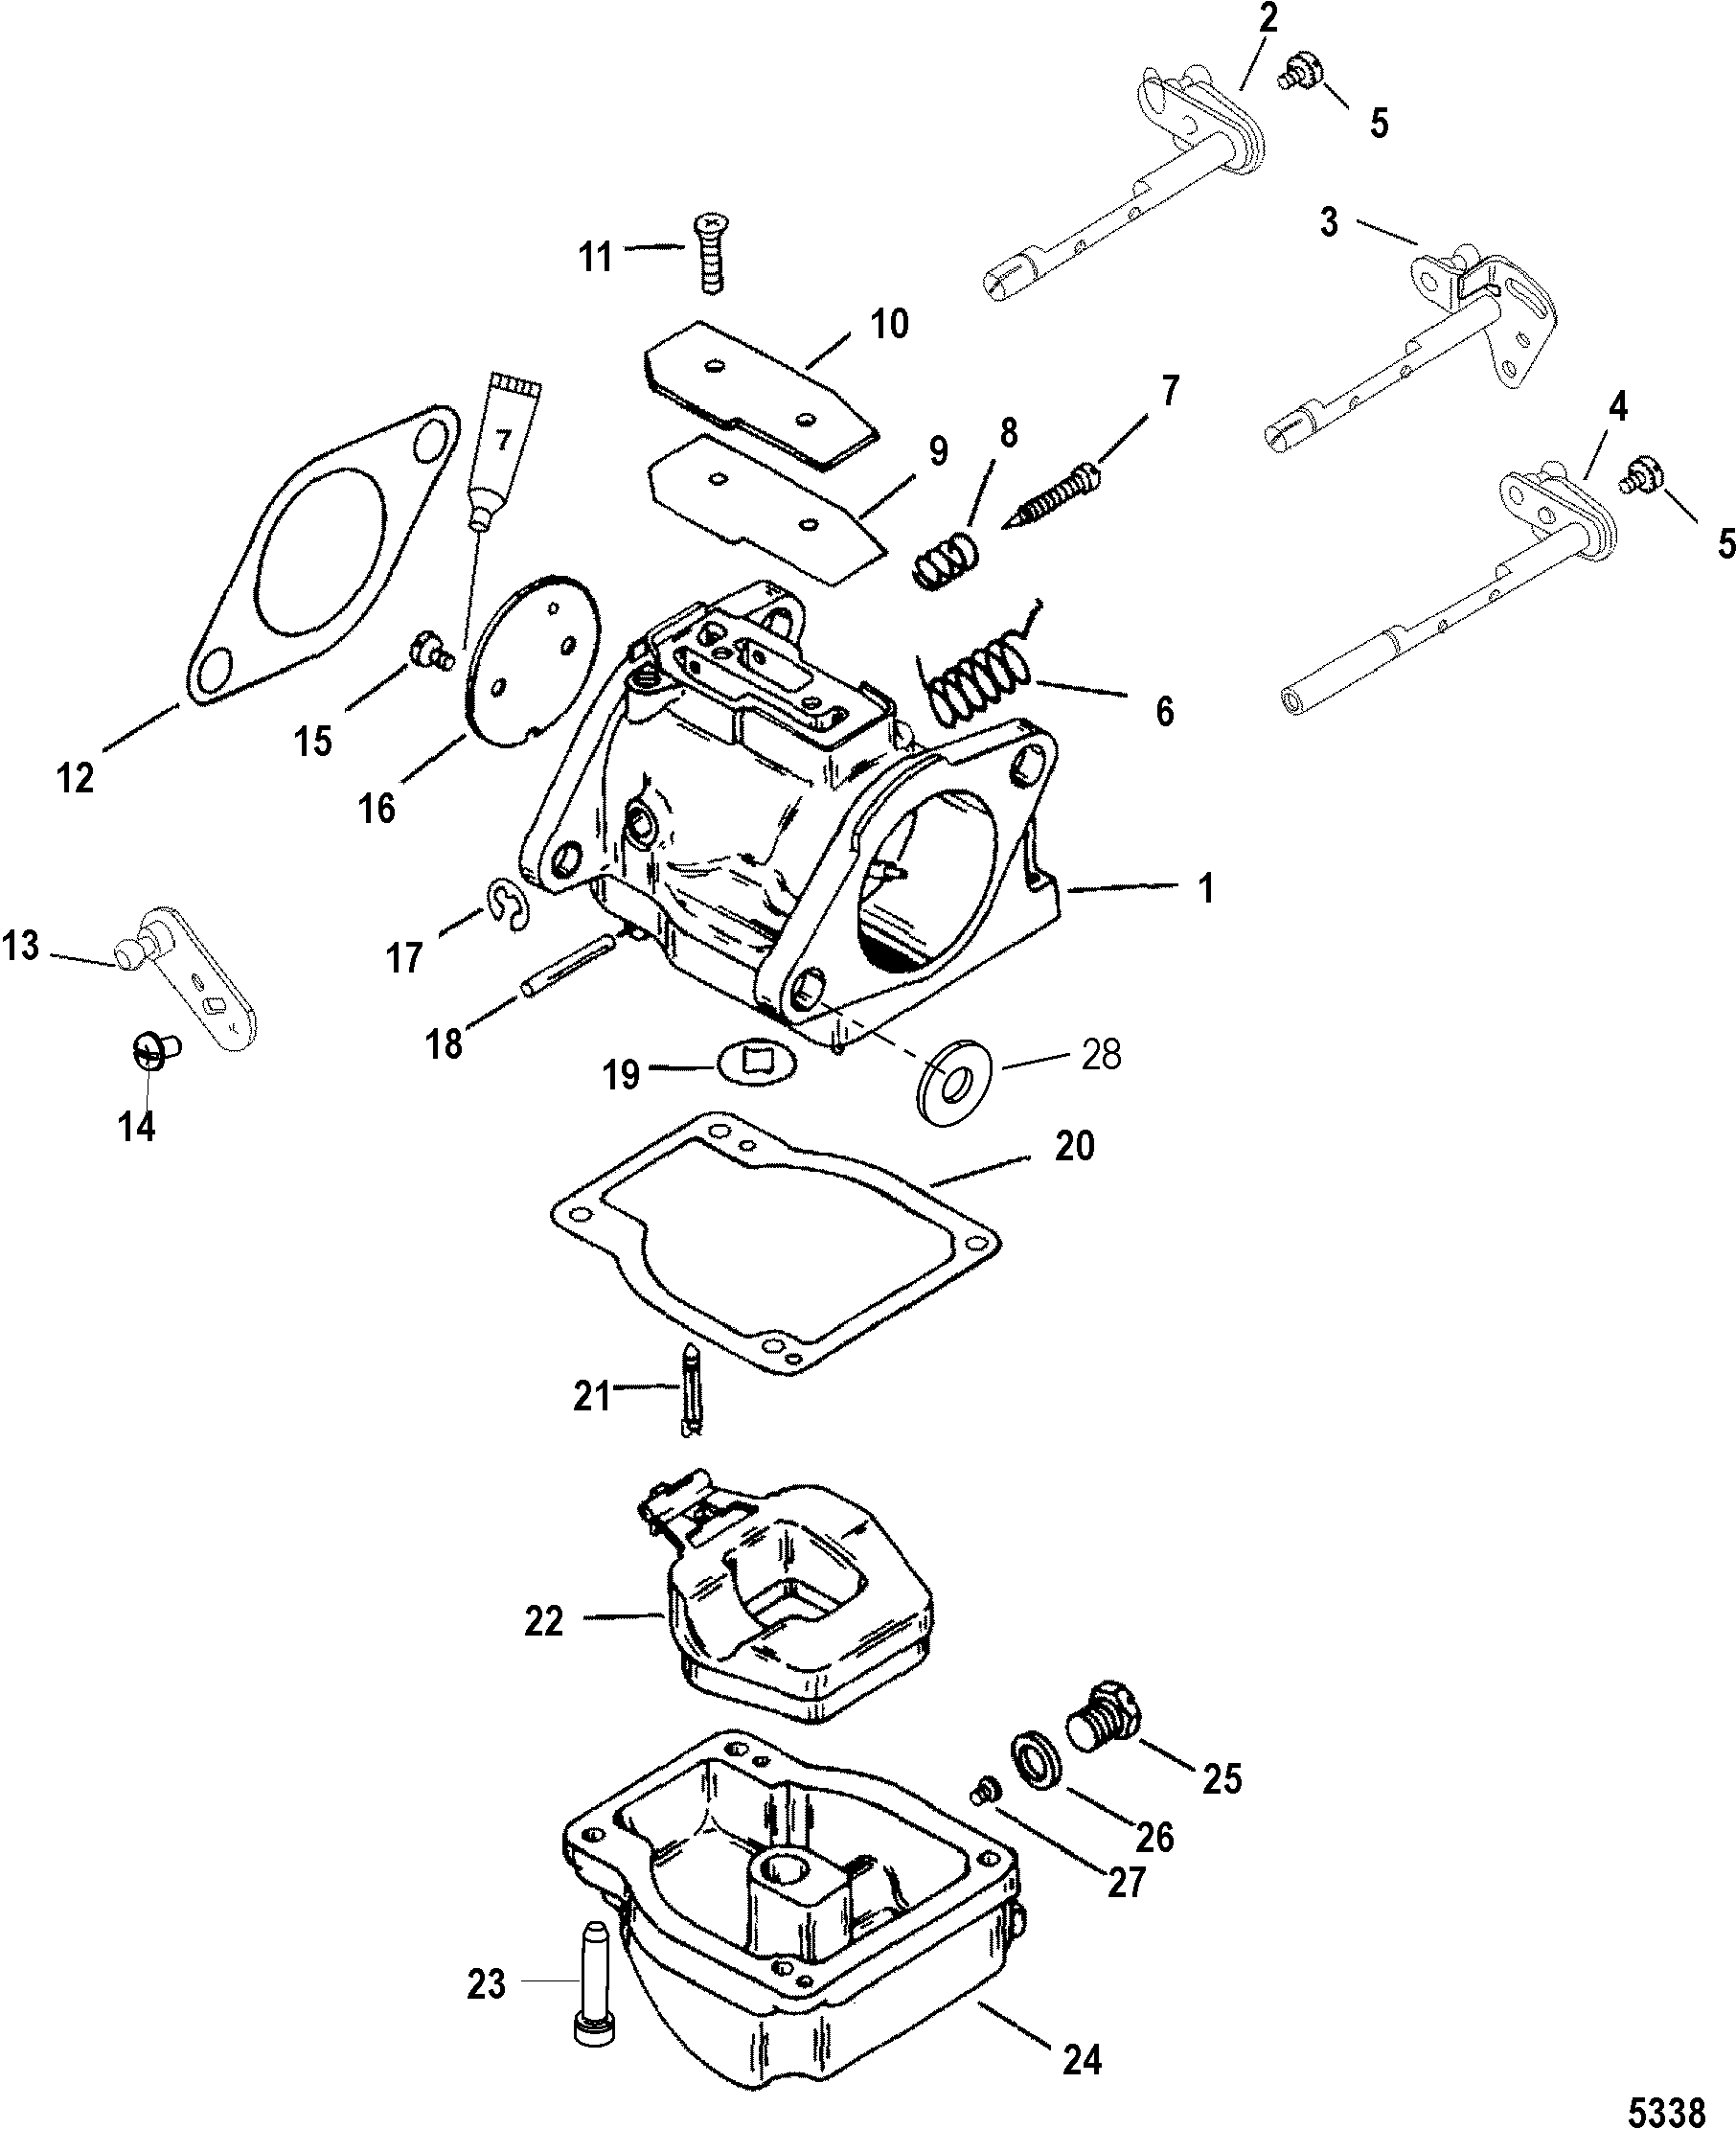 hight resolution of 1998 mercury marine mercury outboard 1060452un cowling diagram and 1998 mercury marine mercury outboard 1060452un cowling